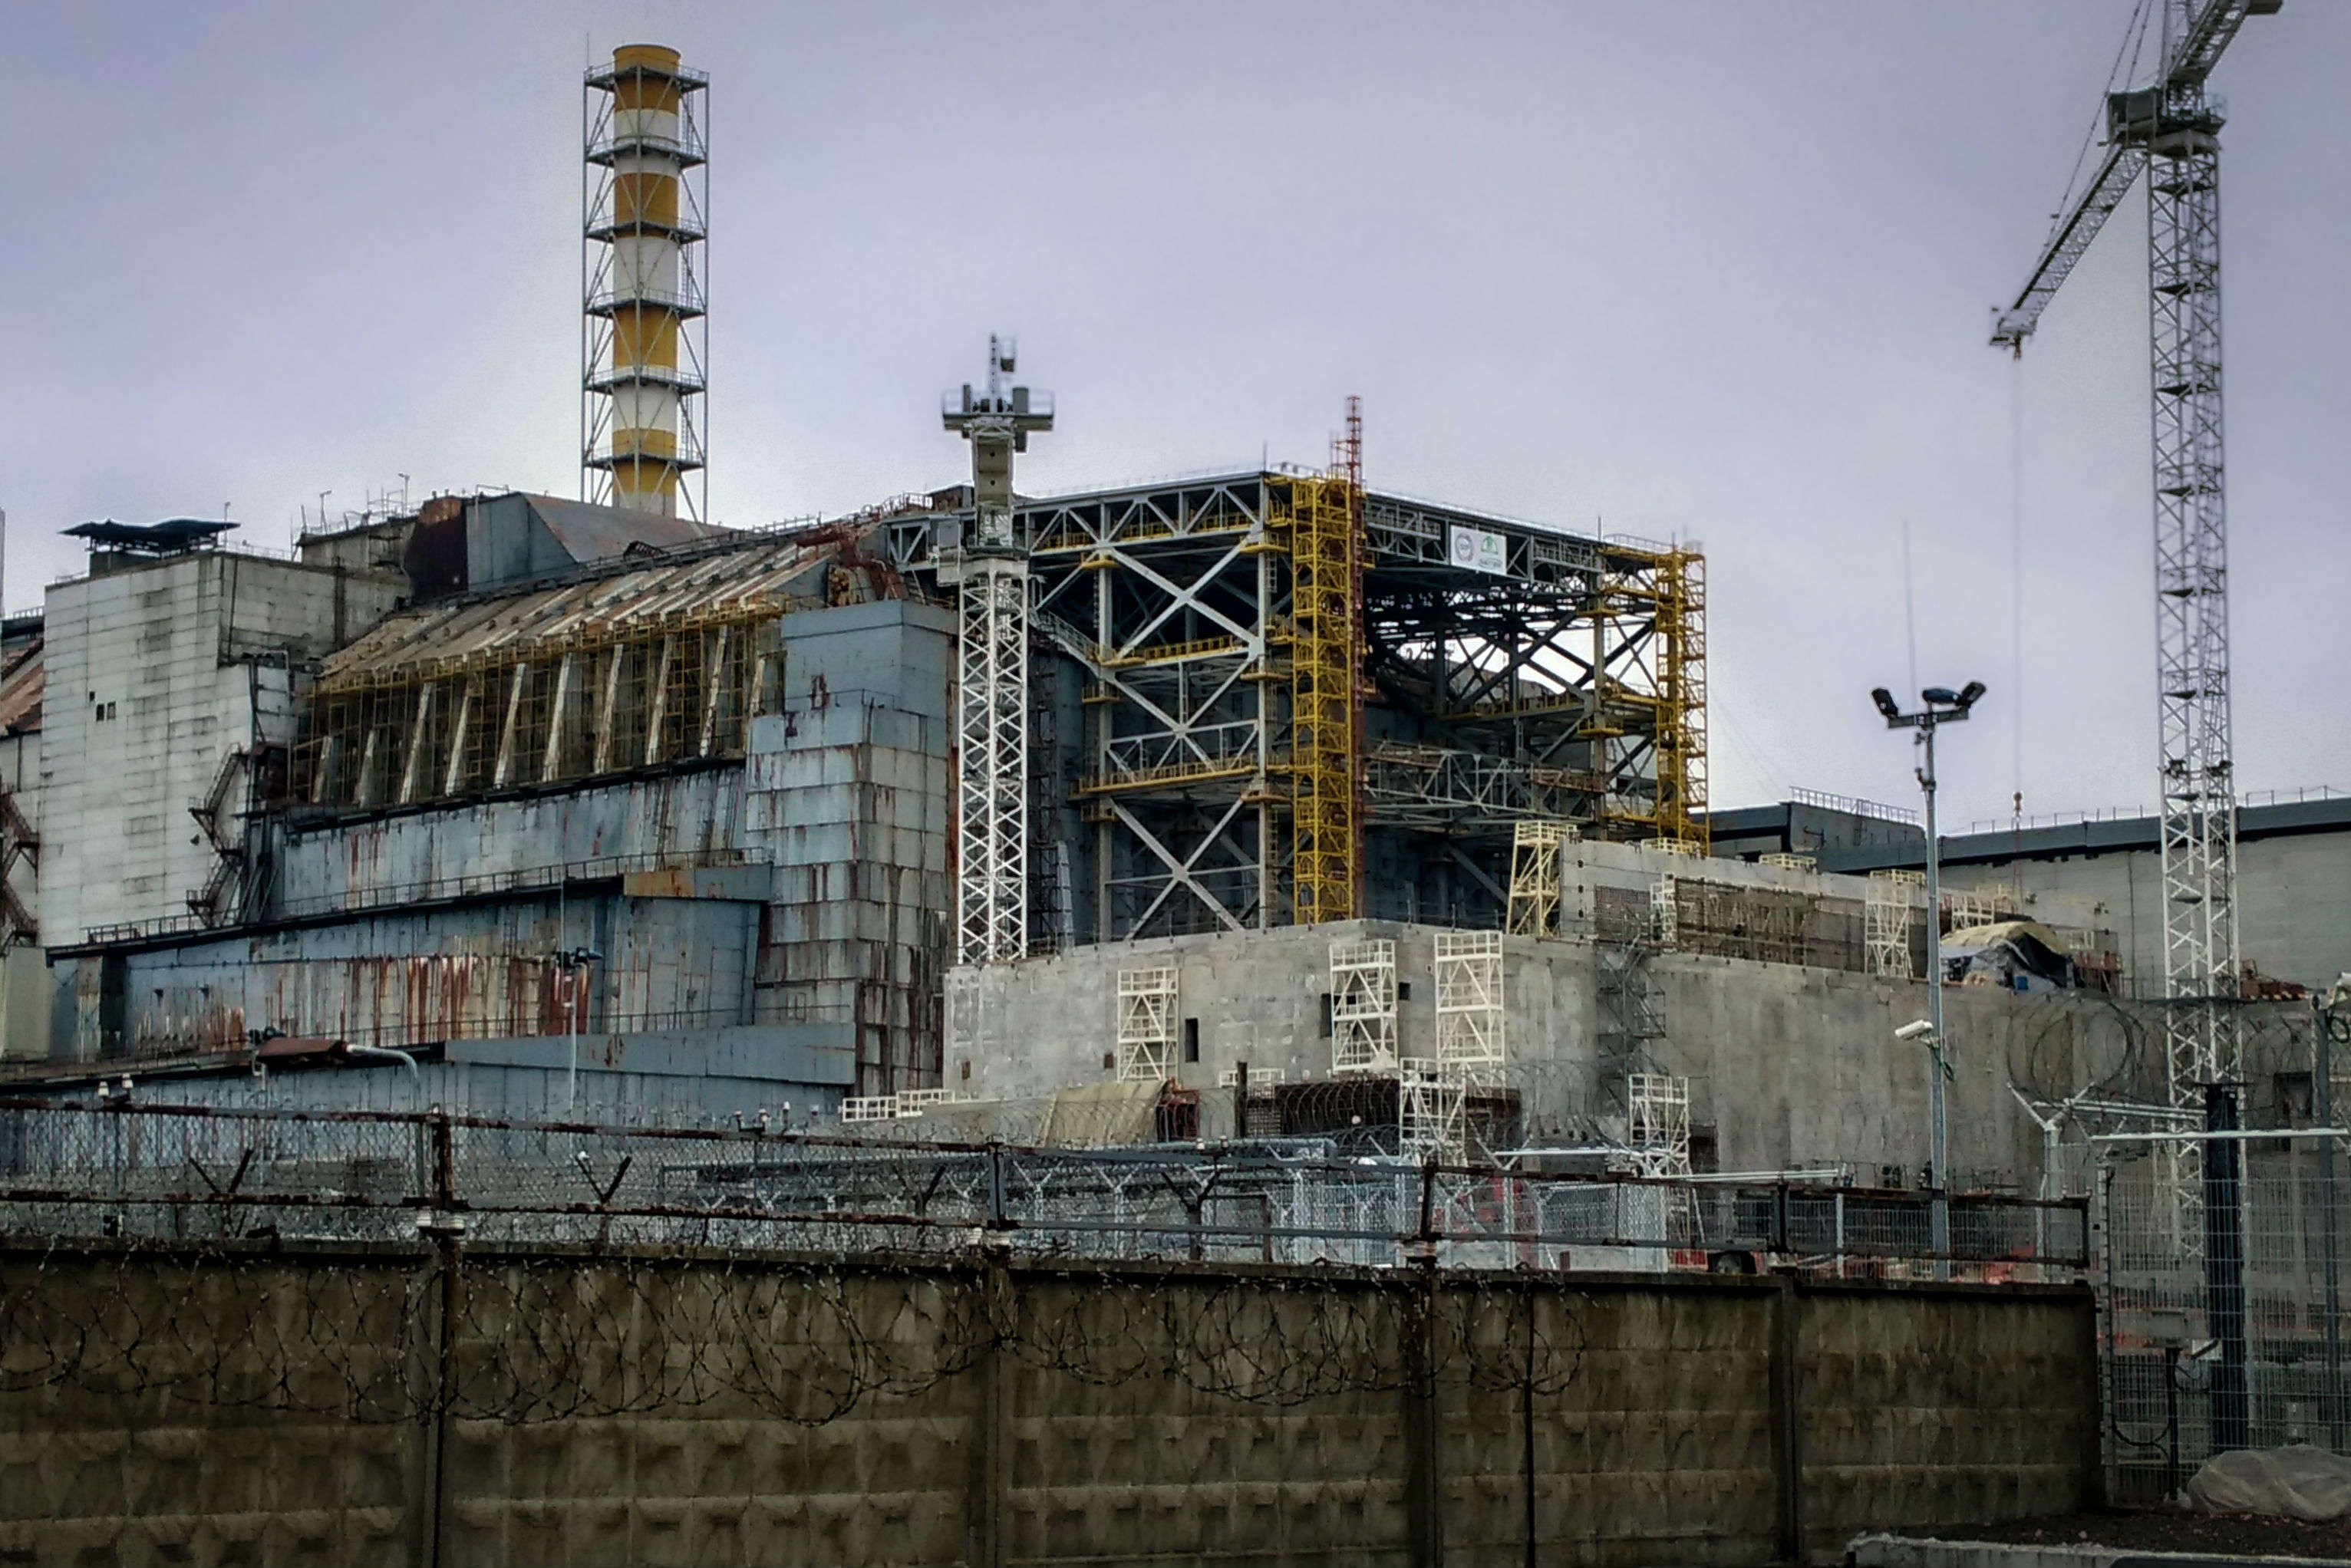 Chernobyl's fateful control room for Reactor 4 is now open for public